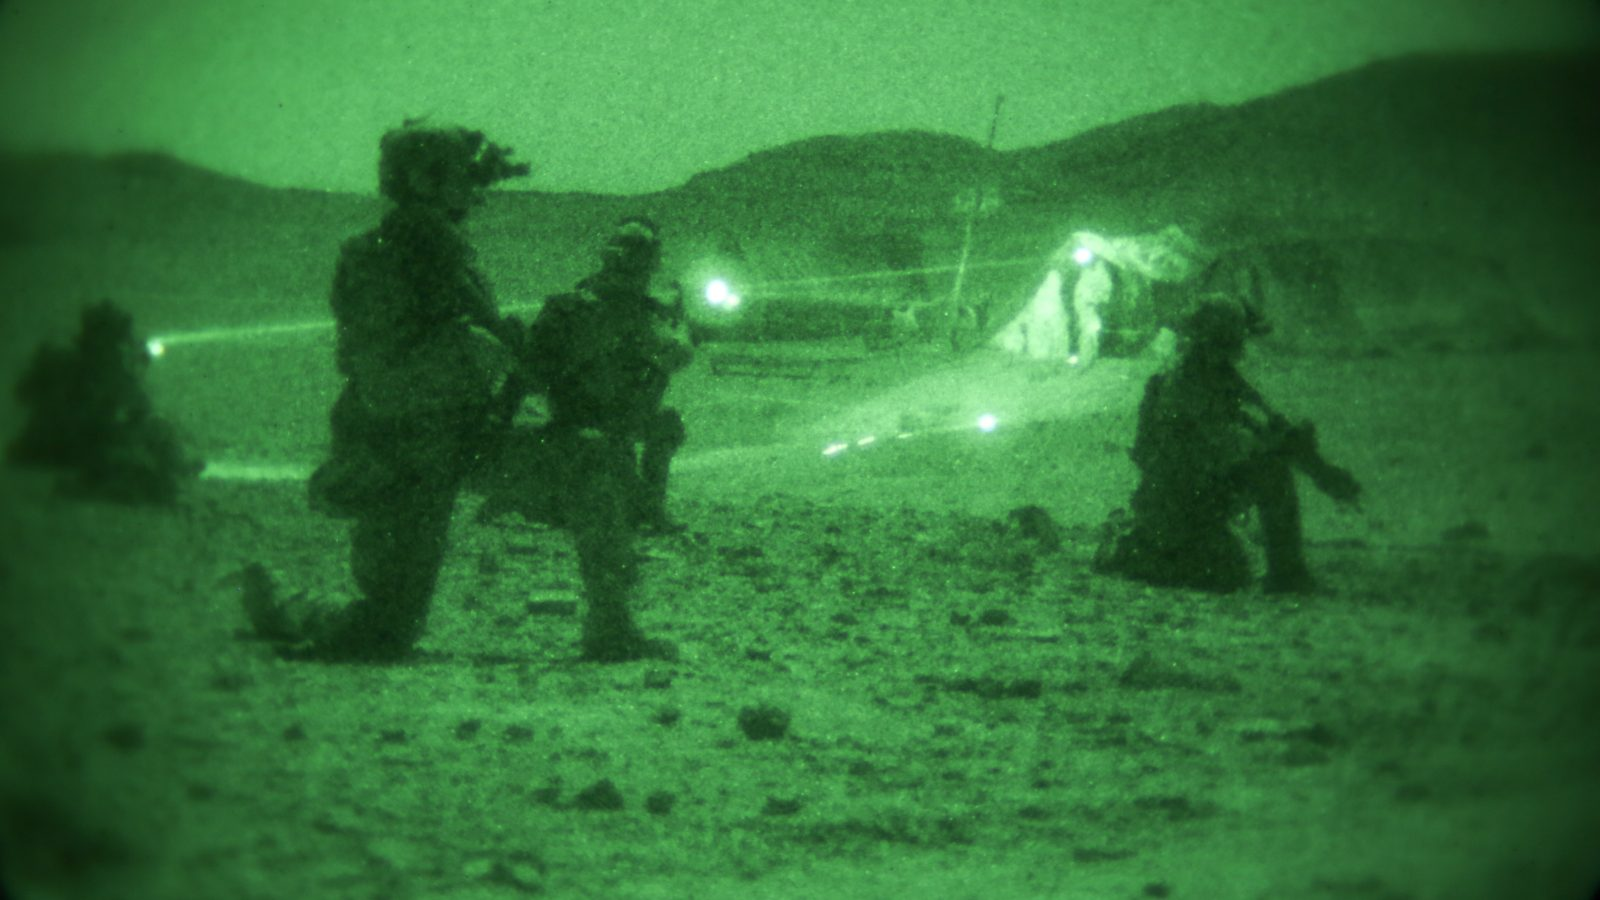 military operation at night